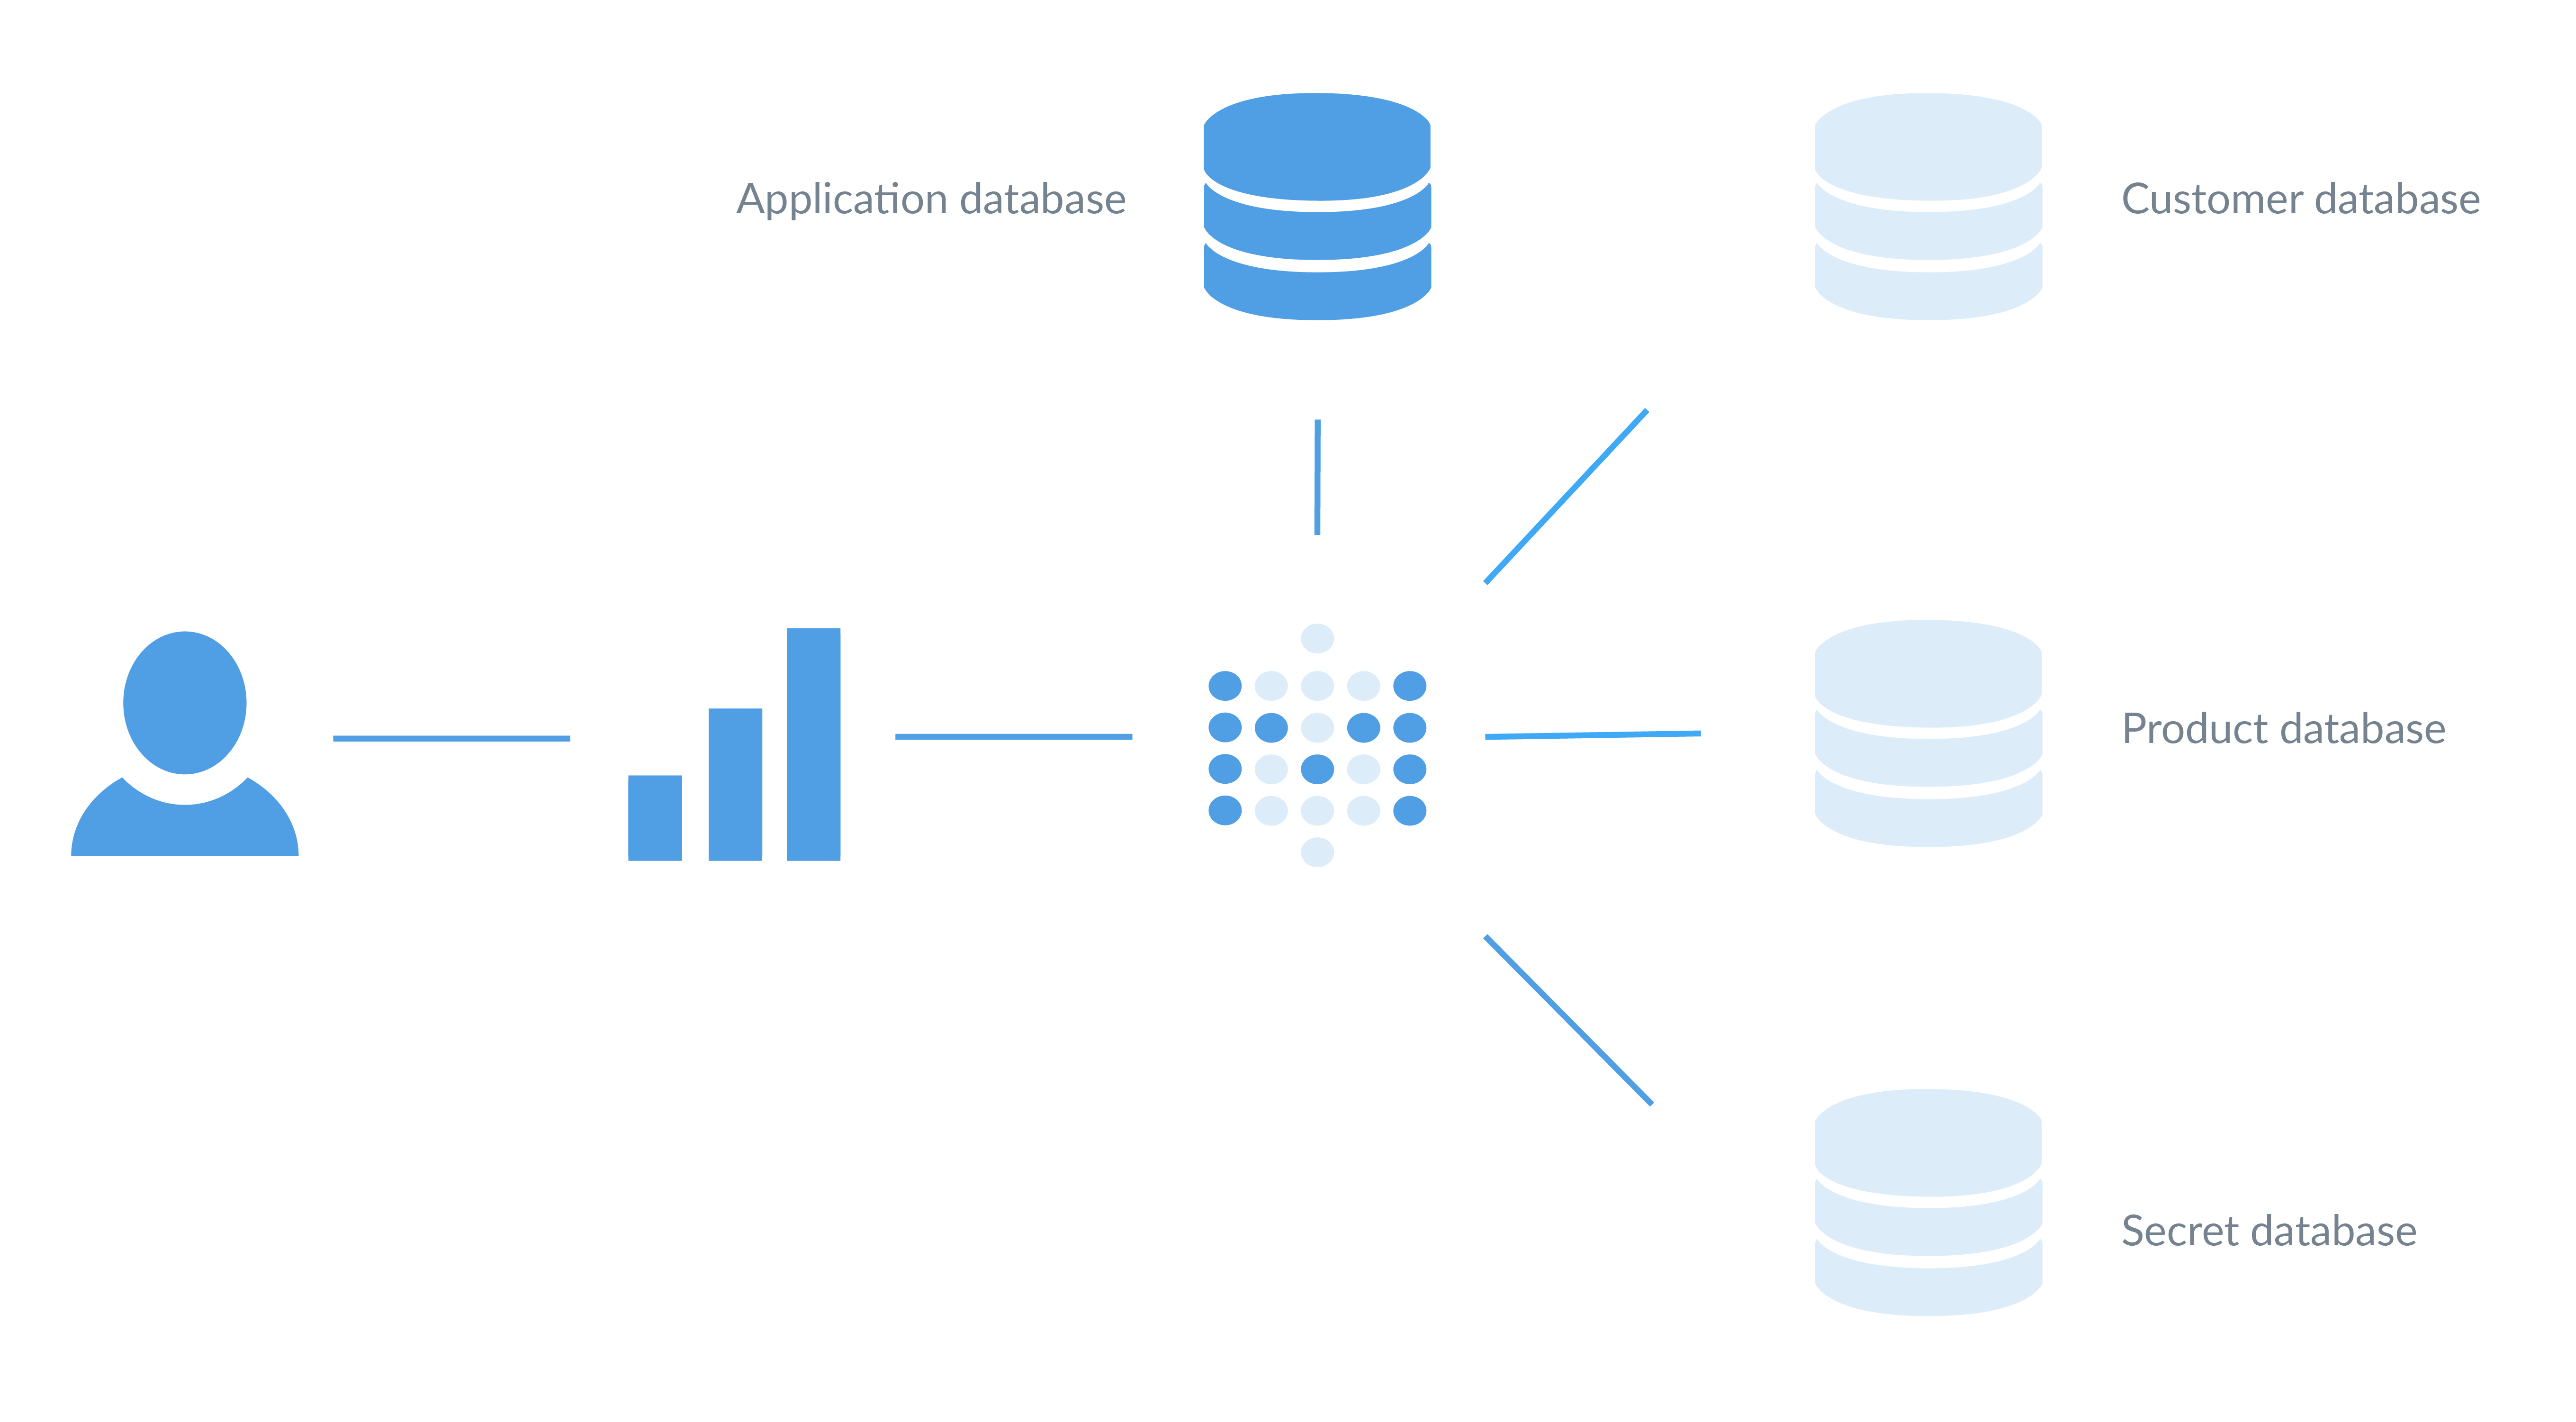 A single Metabase instance connected to multiple databases, as well as to its application database, which stores questions, dashboards, and other data specific to Metabase. You can easily add more Metabase instances as you grow.